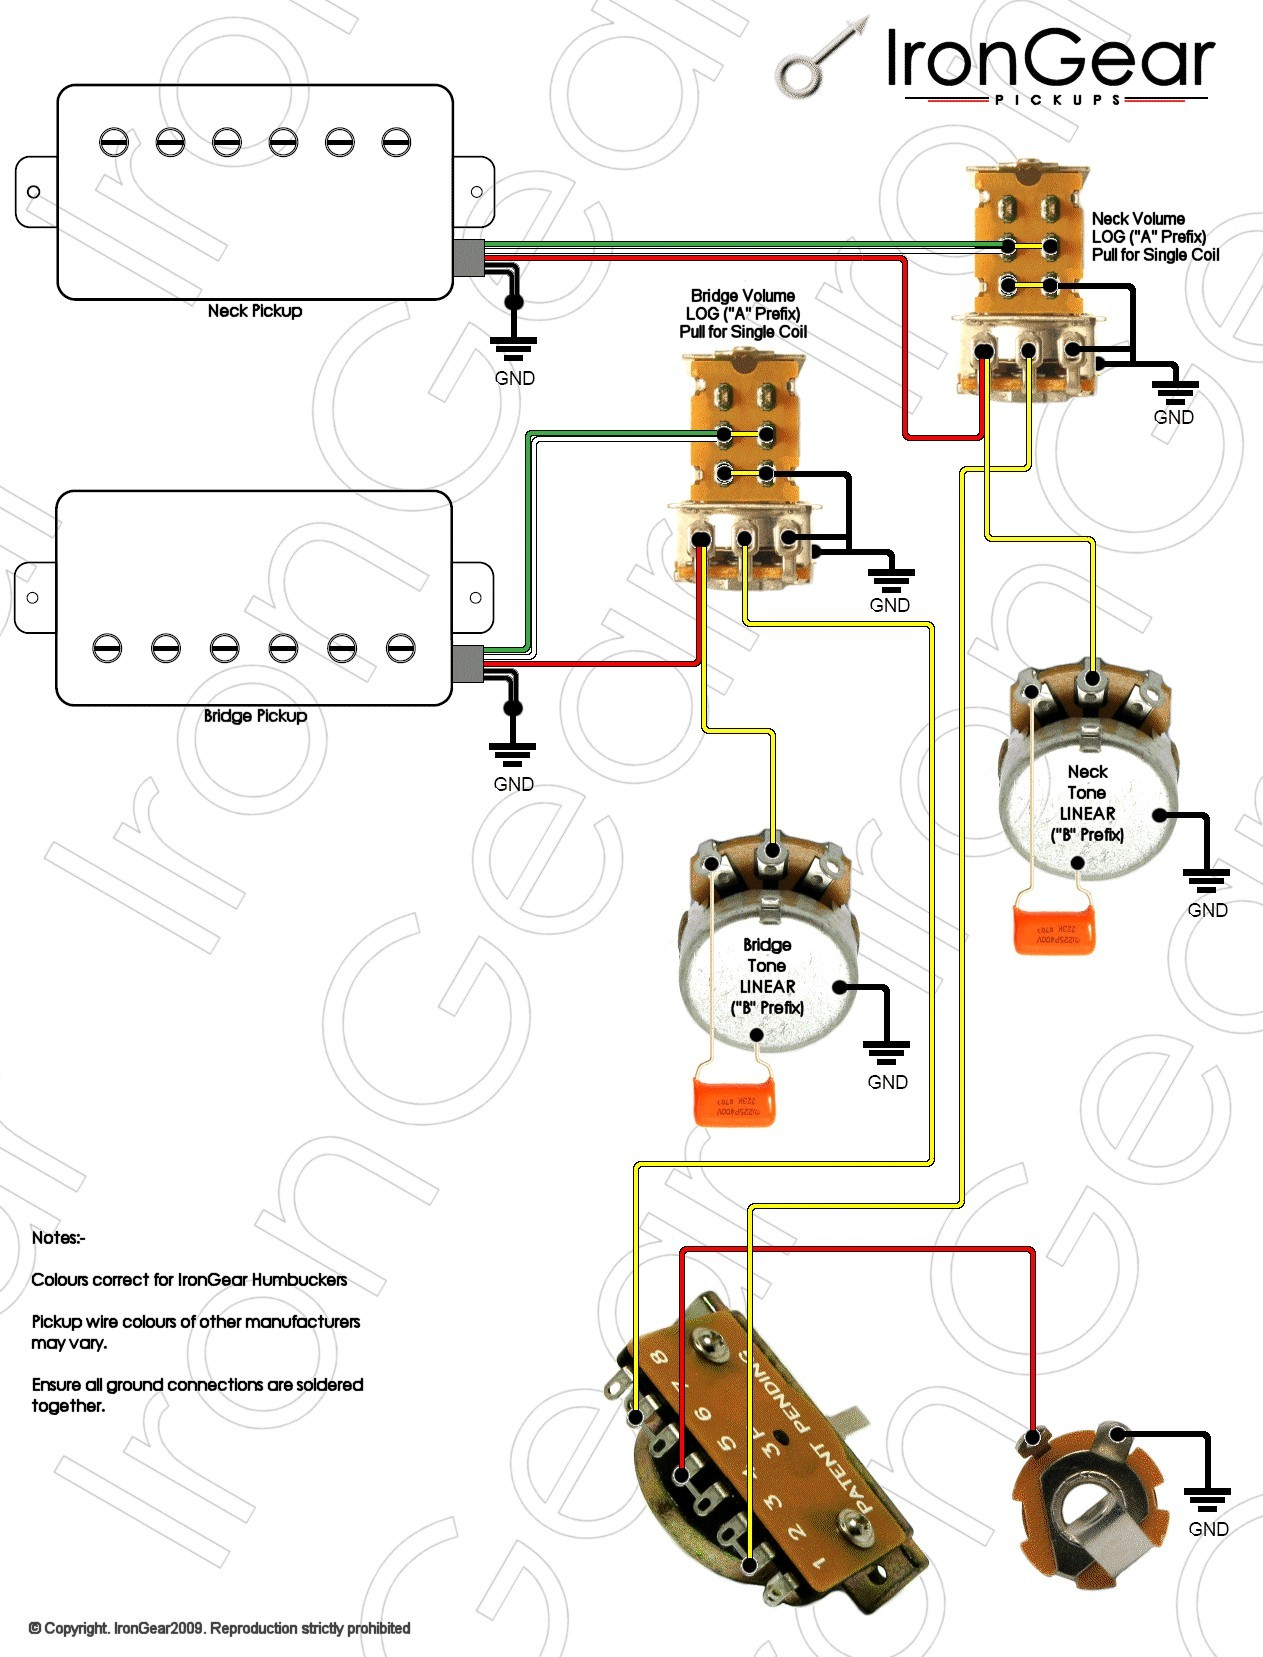 Wiring Diagram Free Download 2 Humbucker 5 Way Switch Trusted Ibanez Guitar Diagrams 3 Rg 550 Wire 1 Single Coil